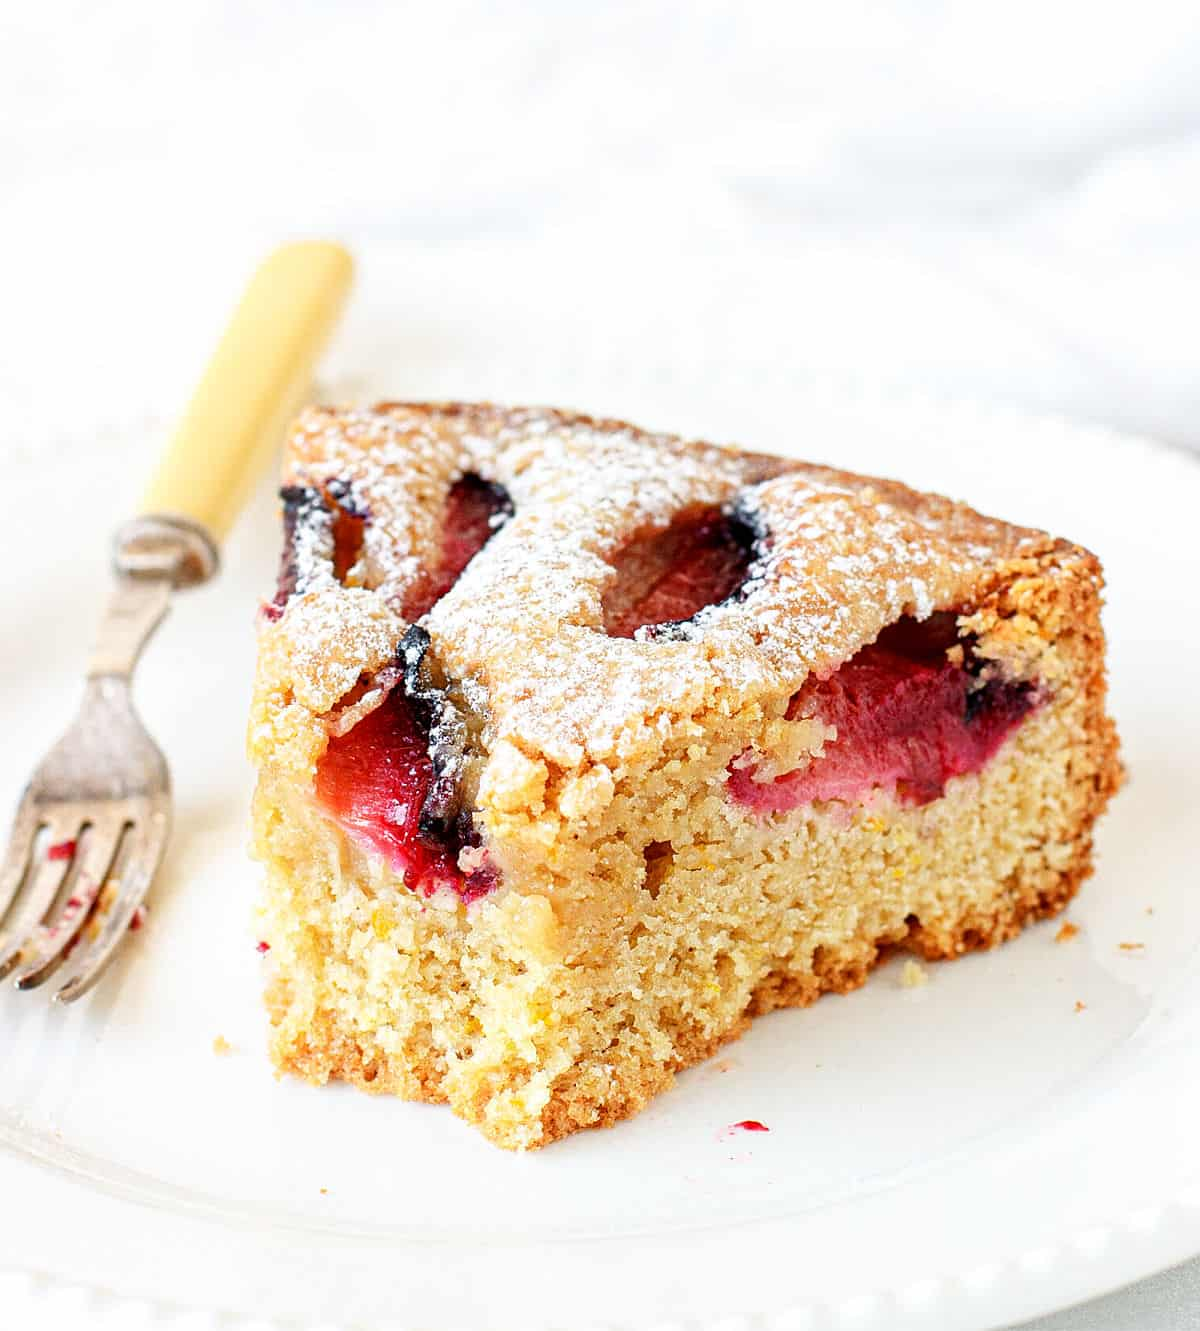 Eaten slice of plum cake on a white plate, silver yellow fork, white background